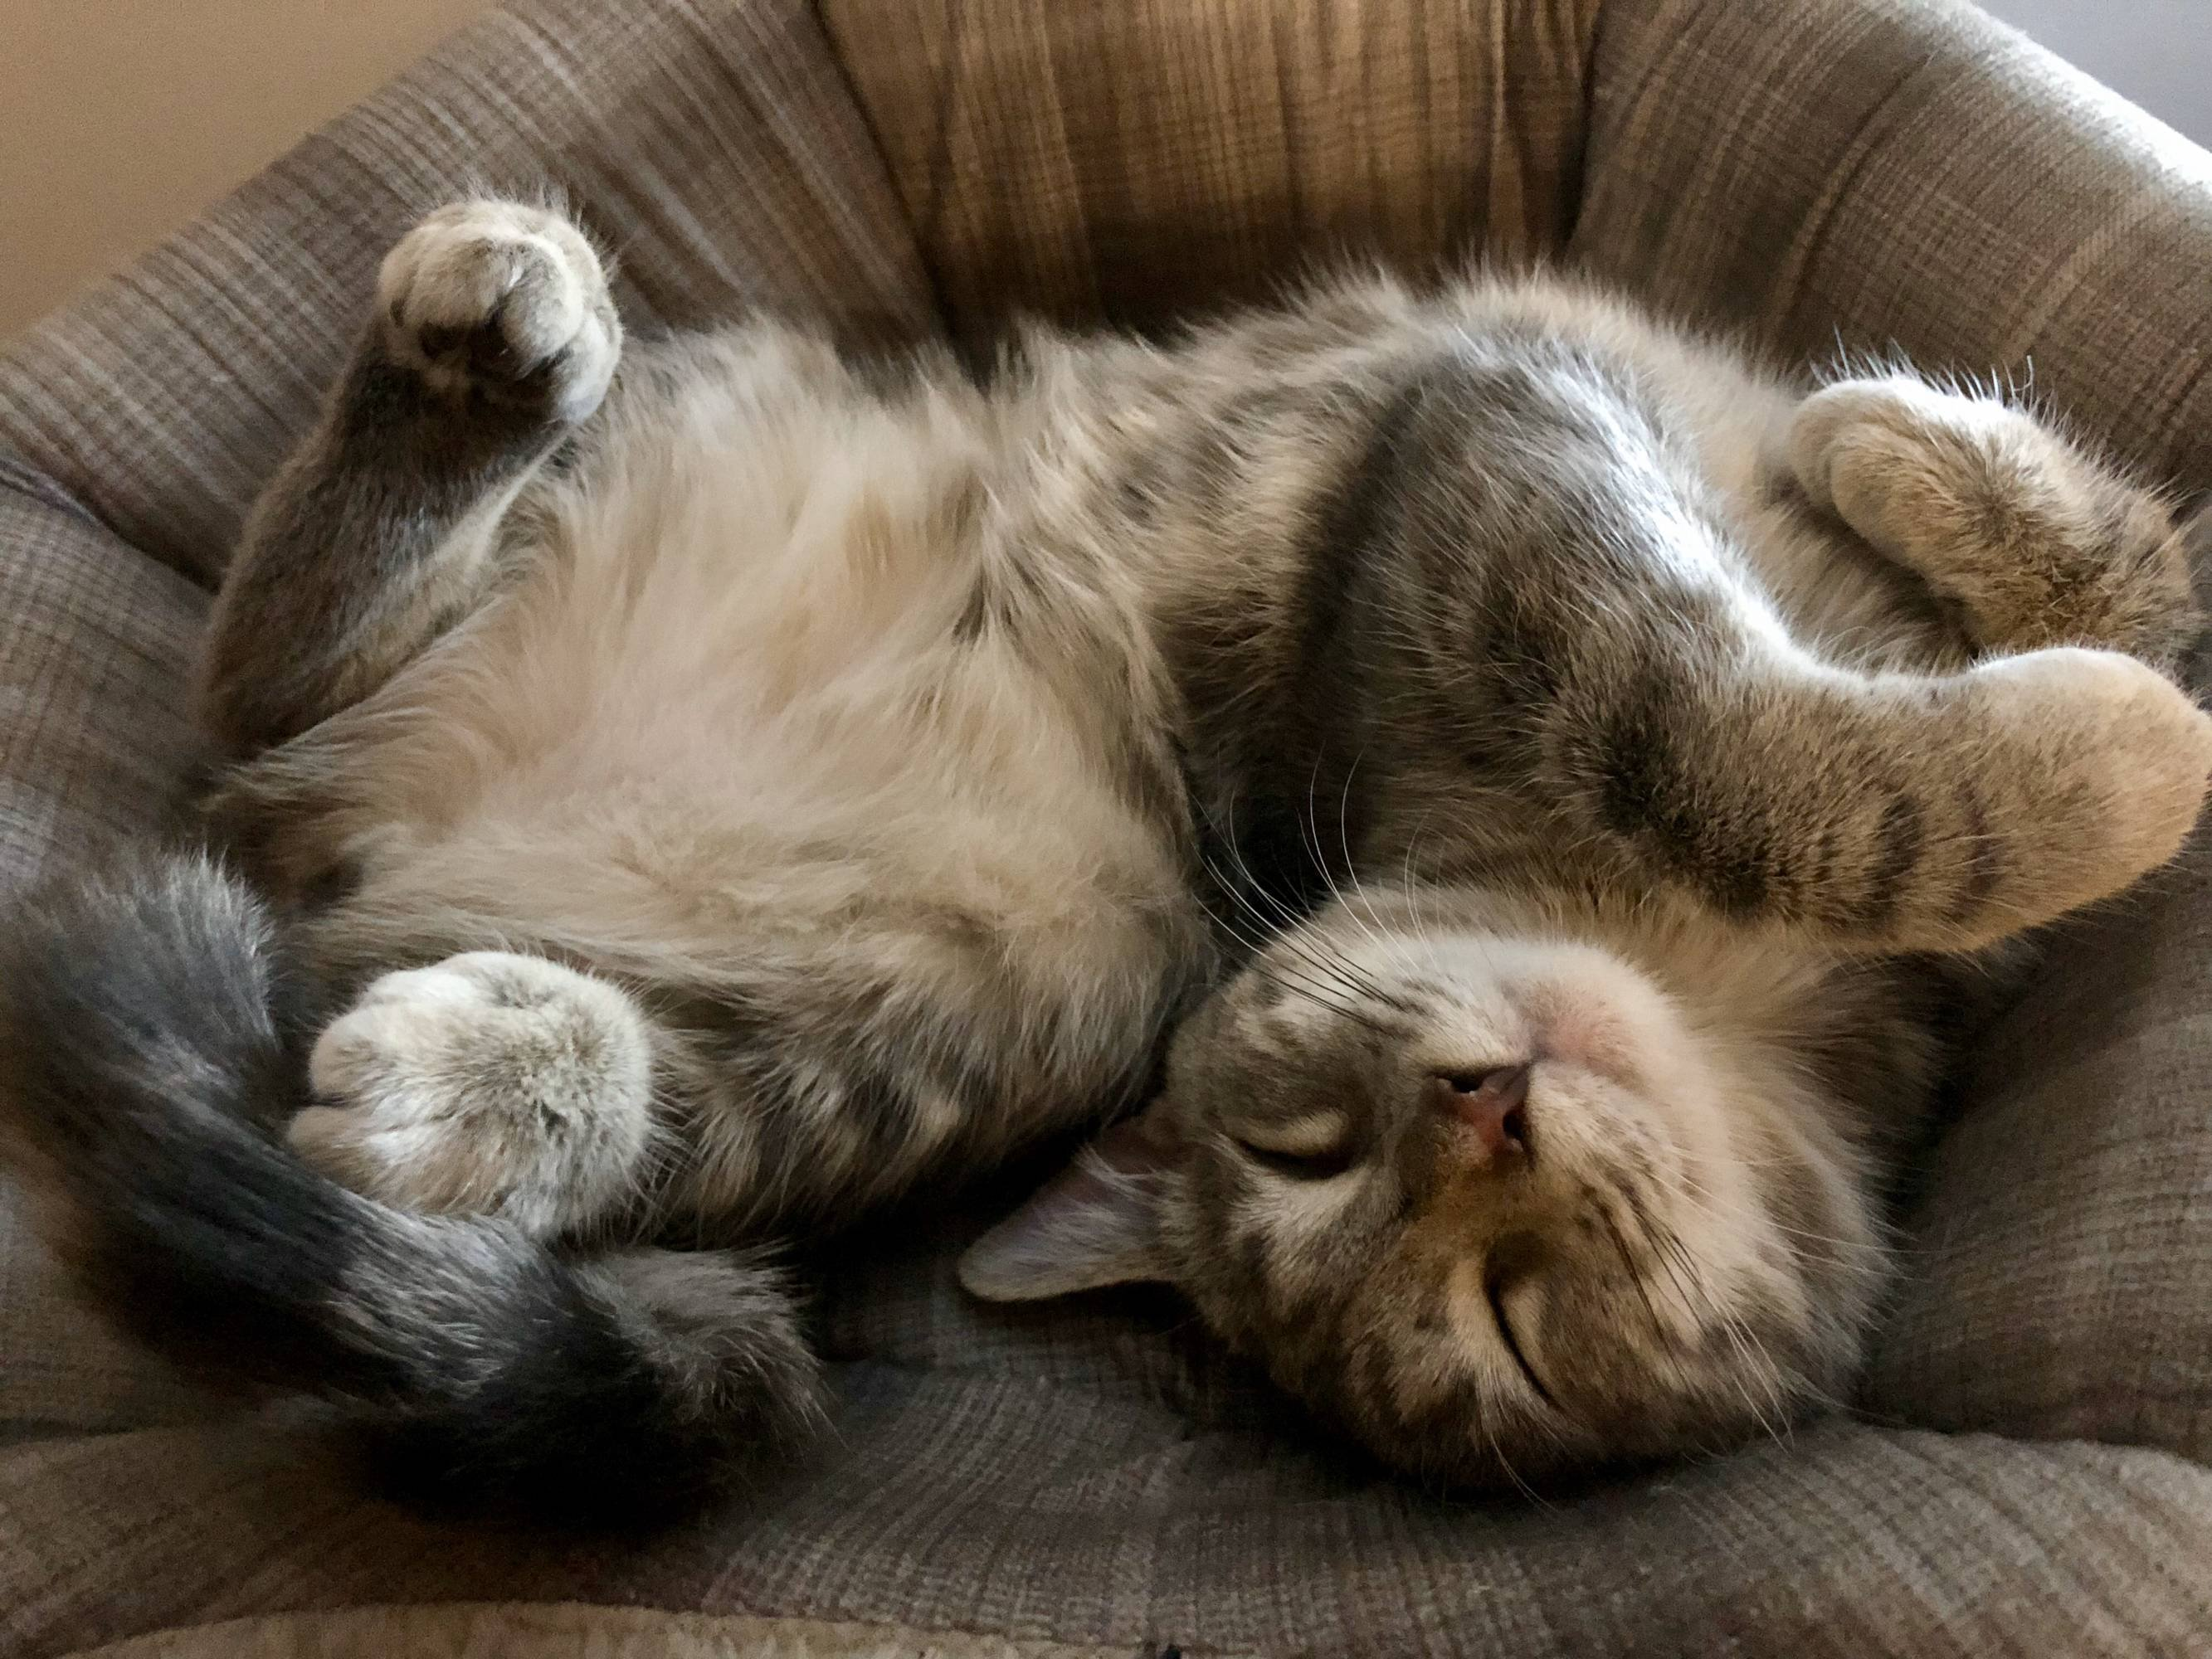 Download Adorable Cat Pictures Photos Images tOVh-Fi8-